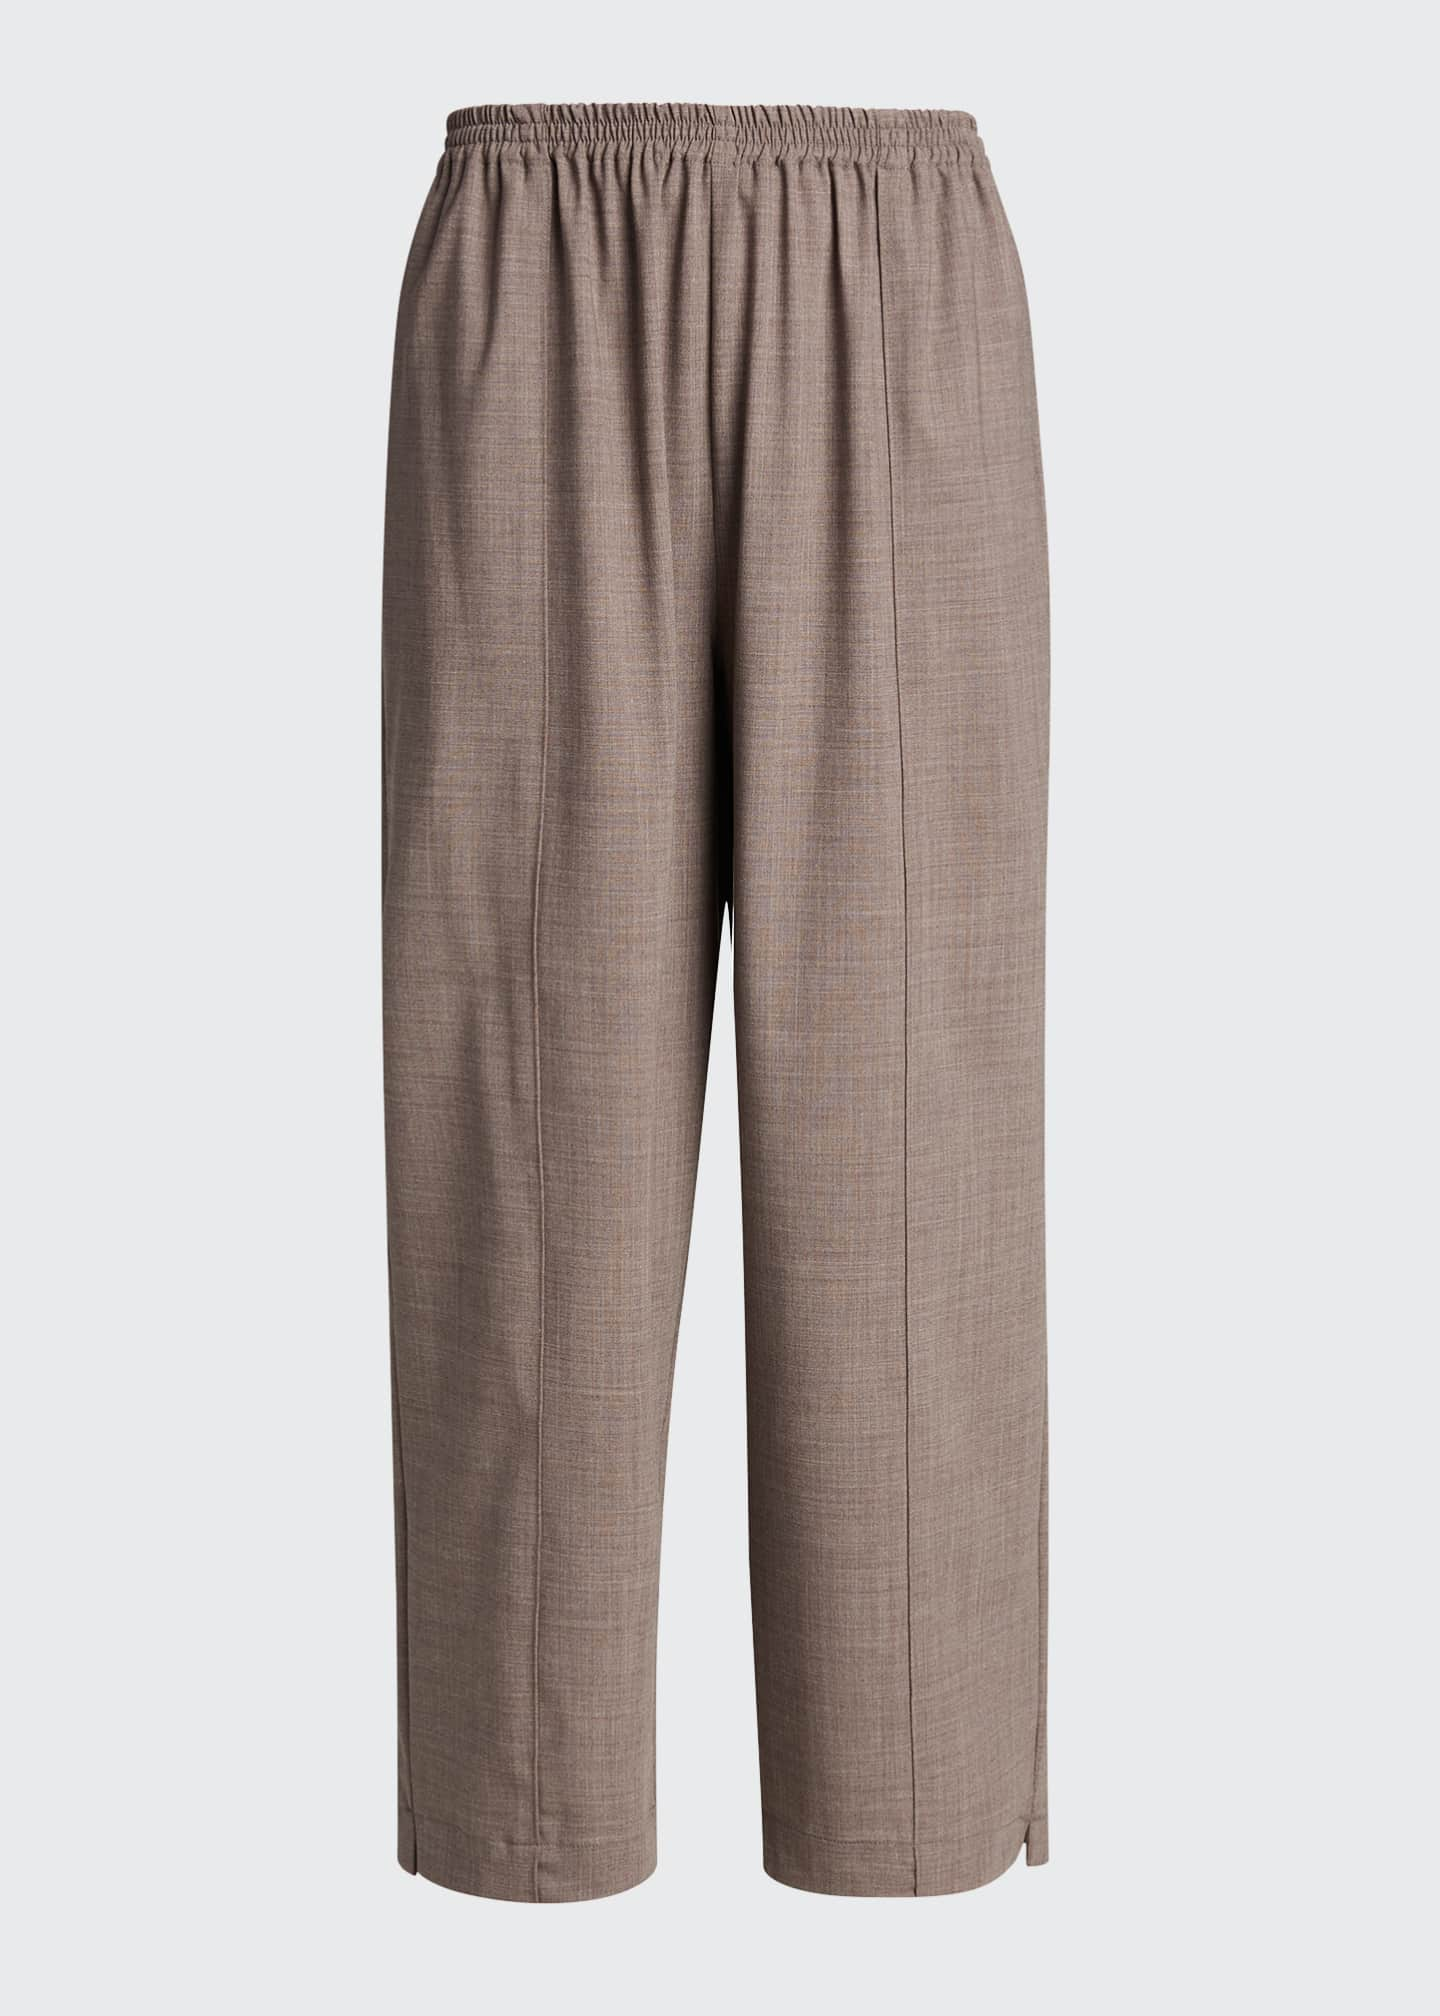 Image 5 of 5: Wool-Silk Relaxed Ankle Pants